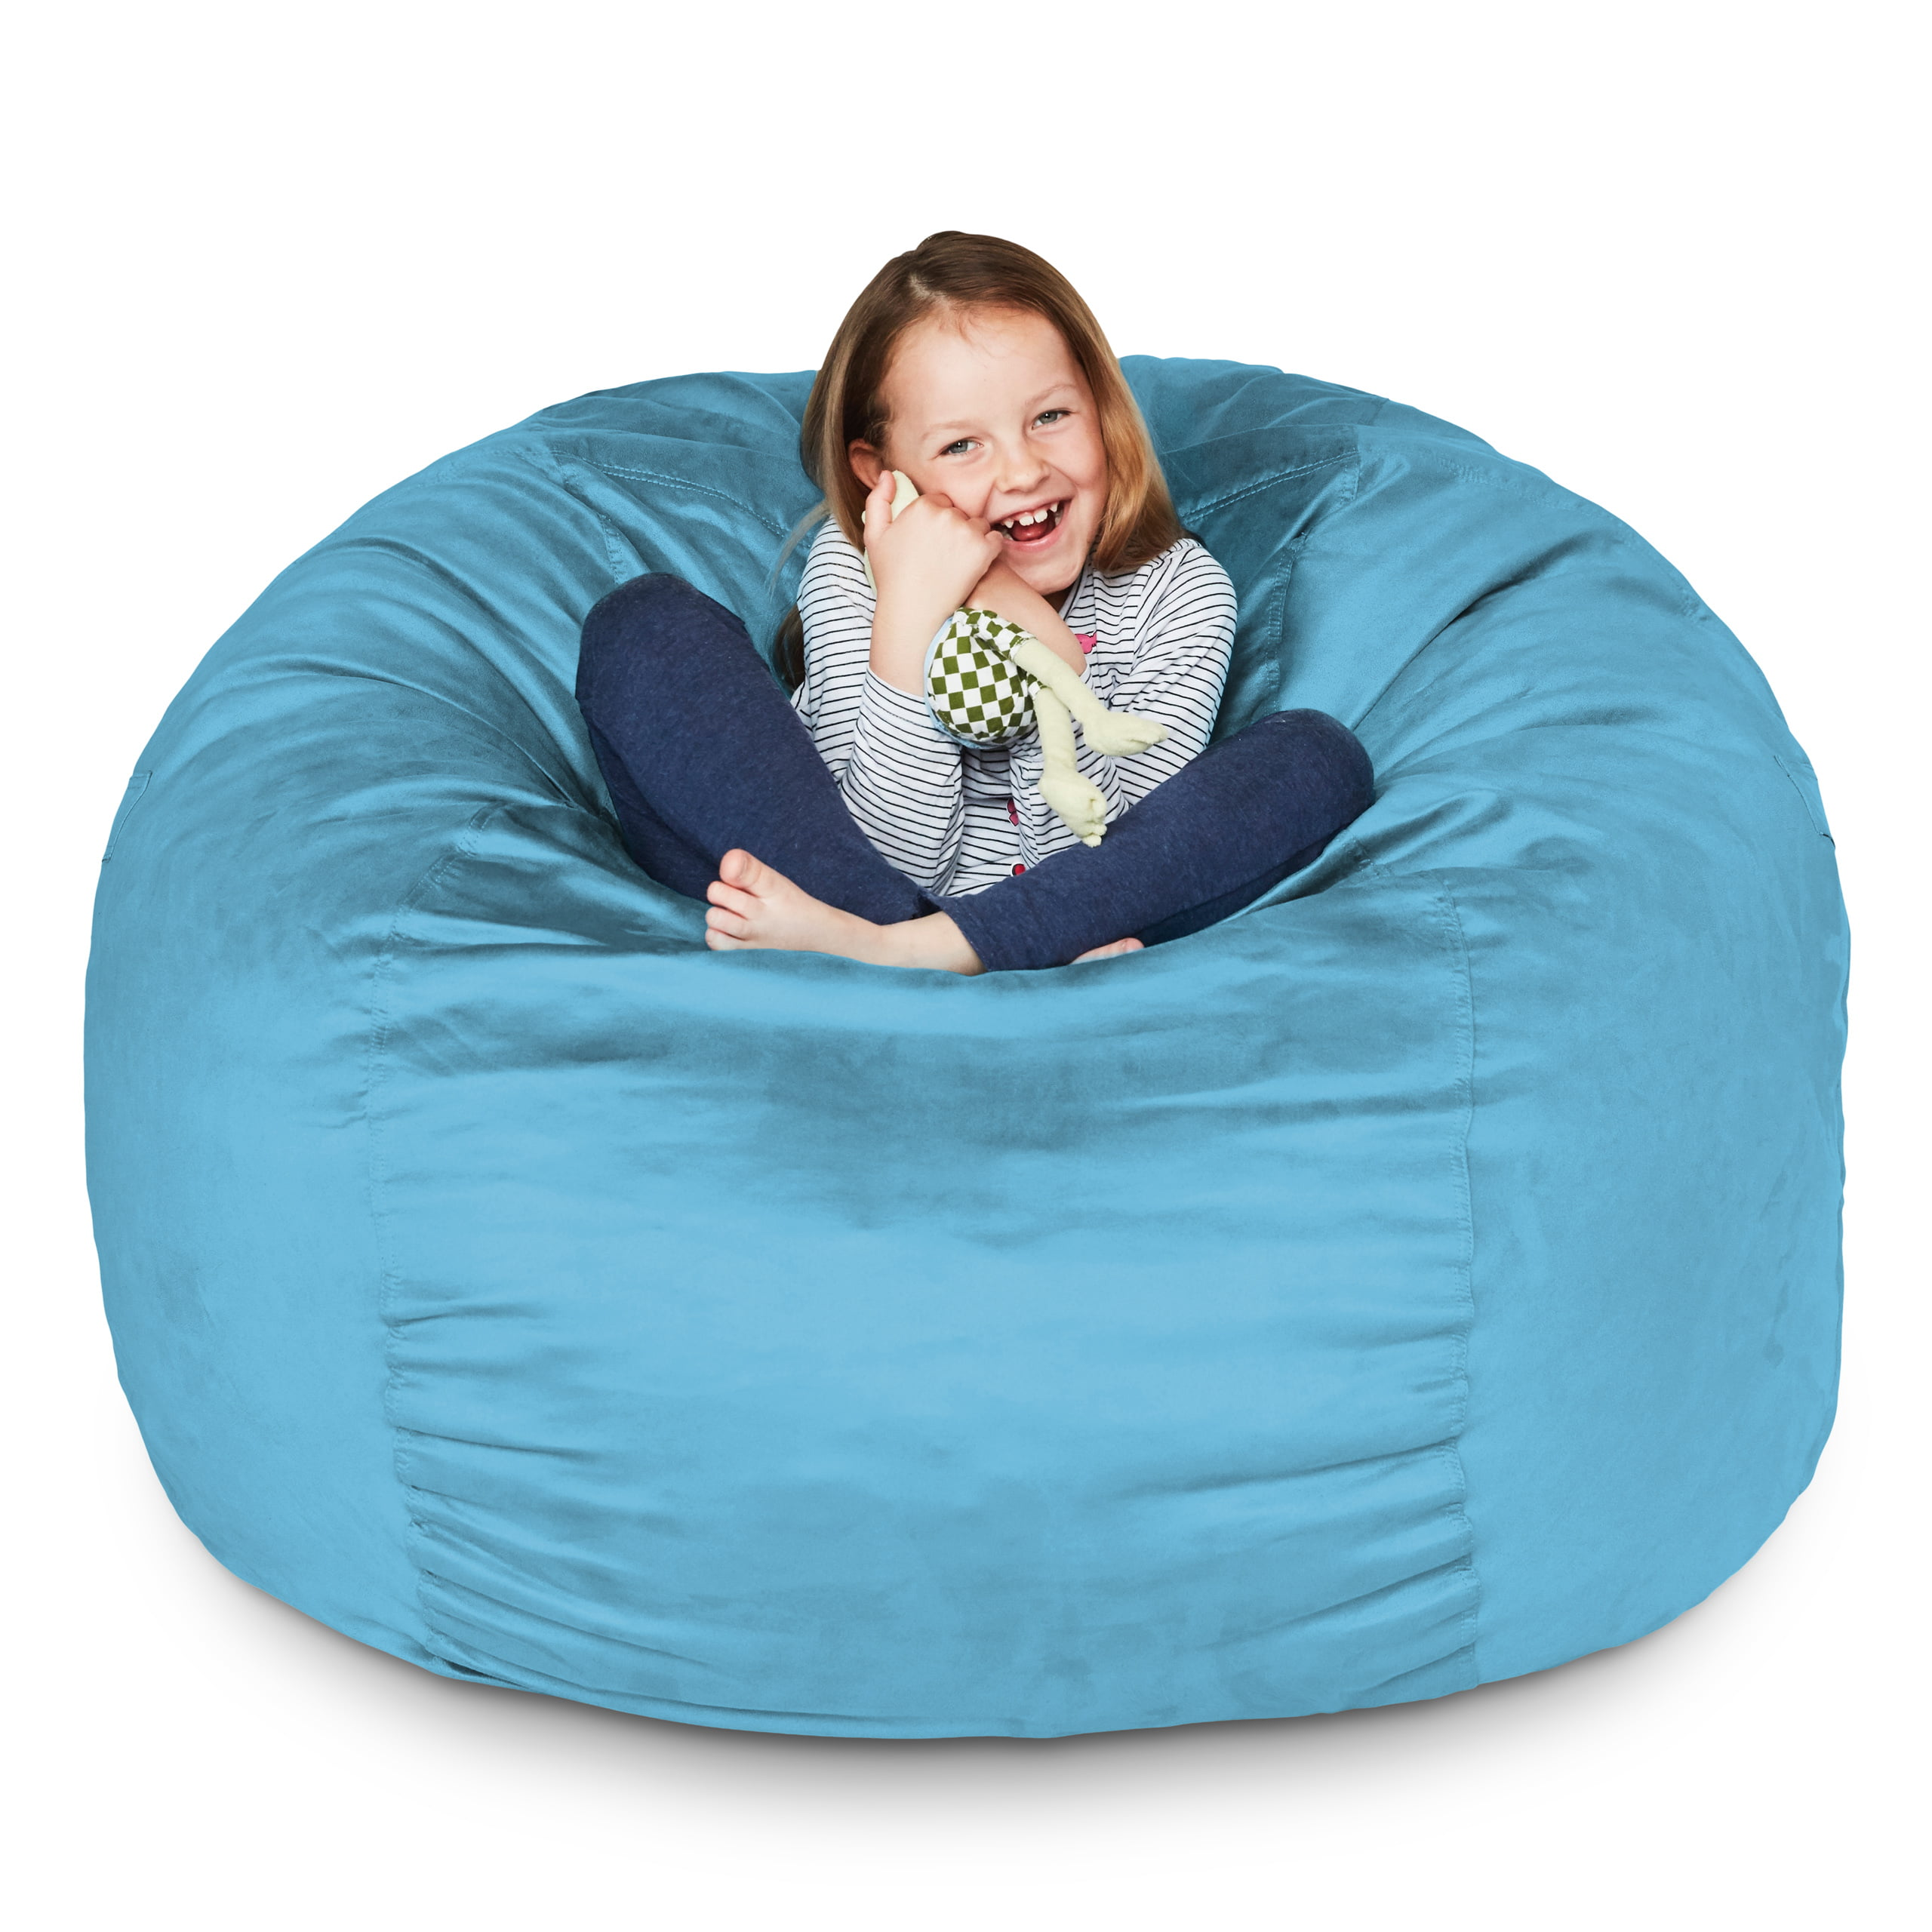 Lumaland Luxury 3-Foot Bean Bag Chair with Microsuede ...